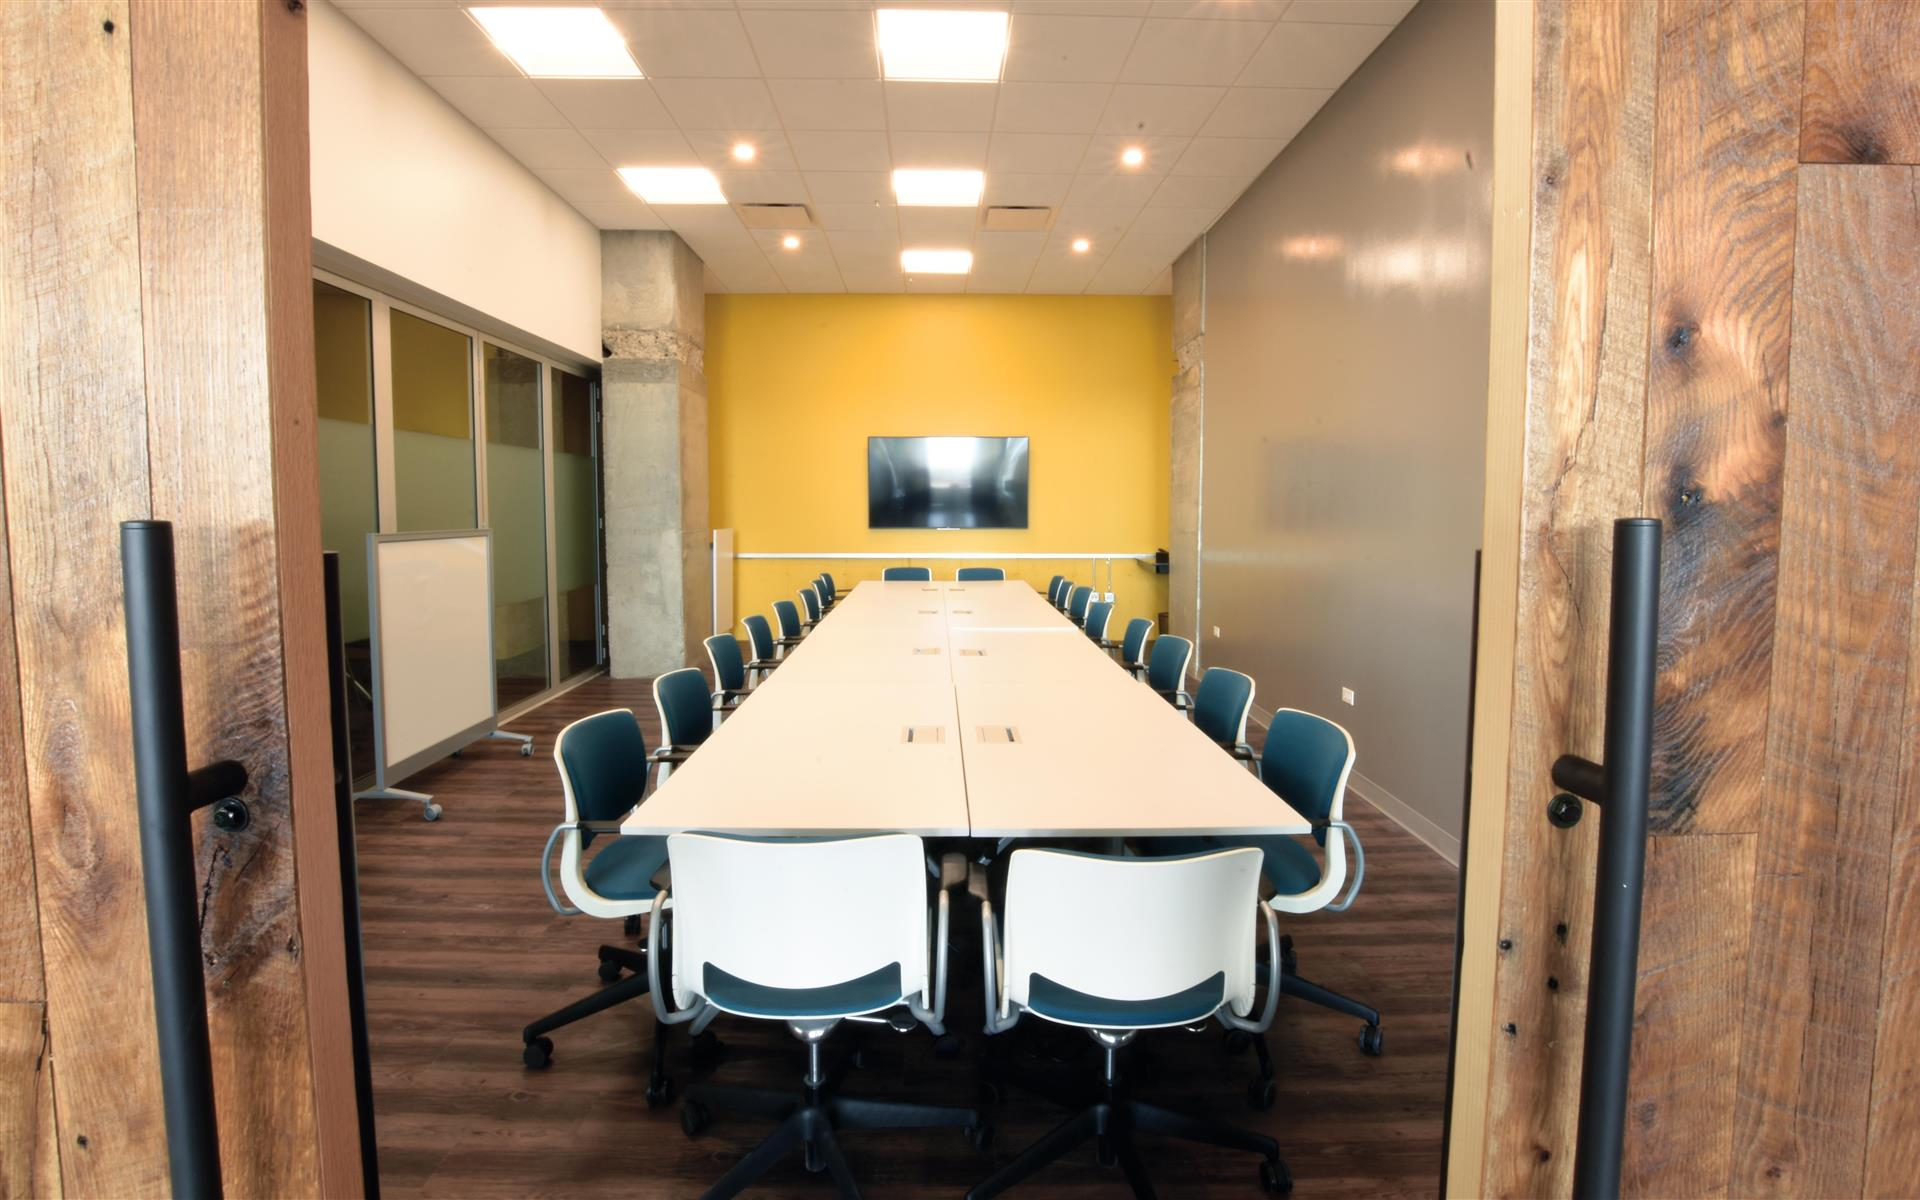 25N Coworking - Arlington Heights - Board Room